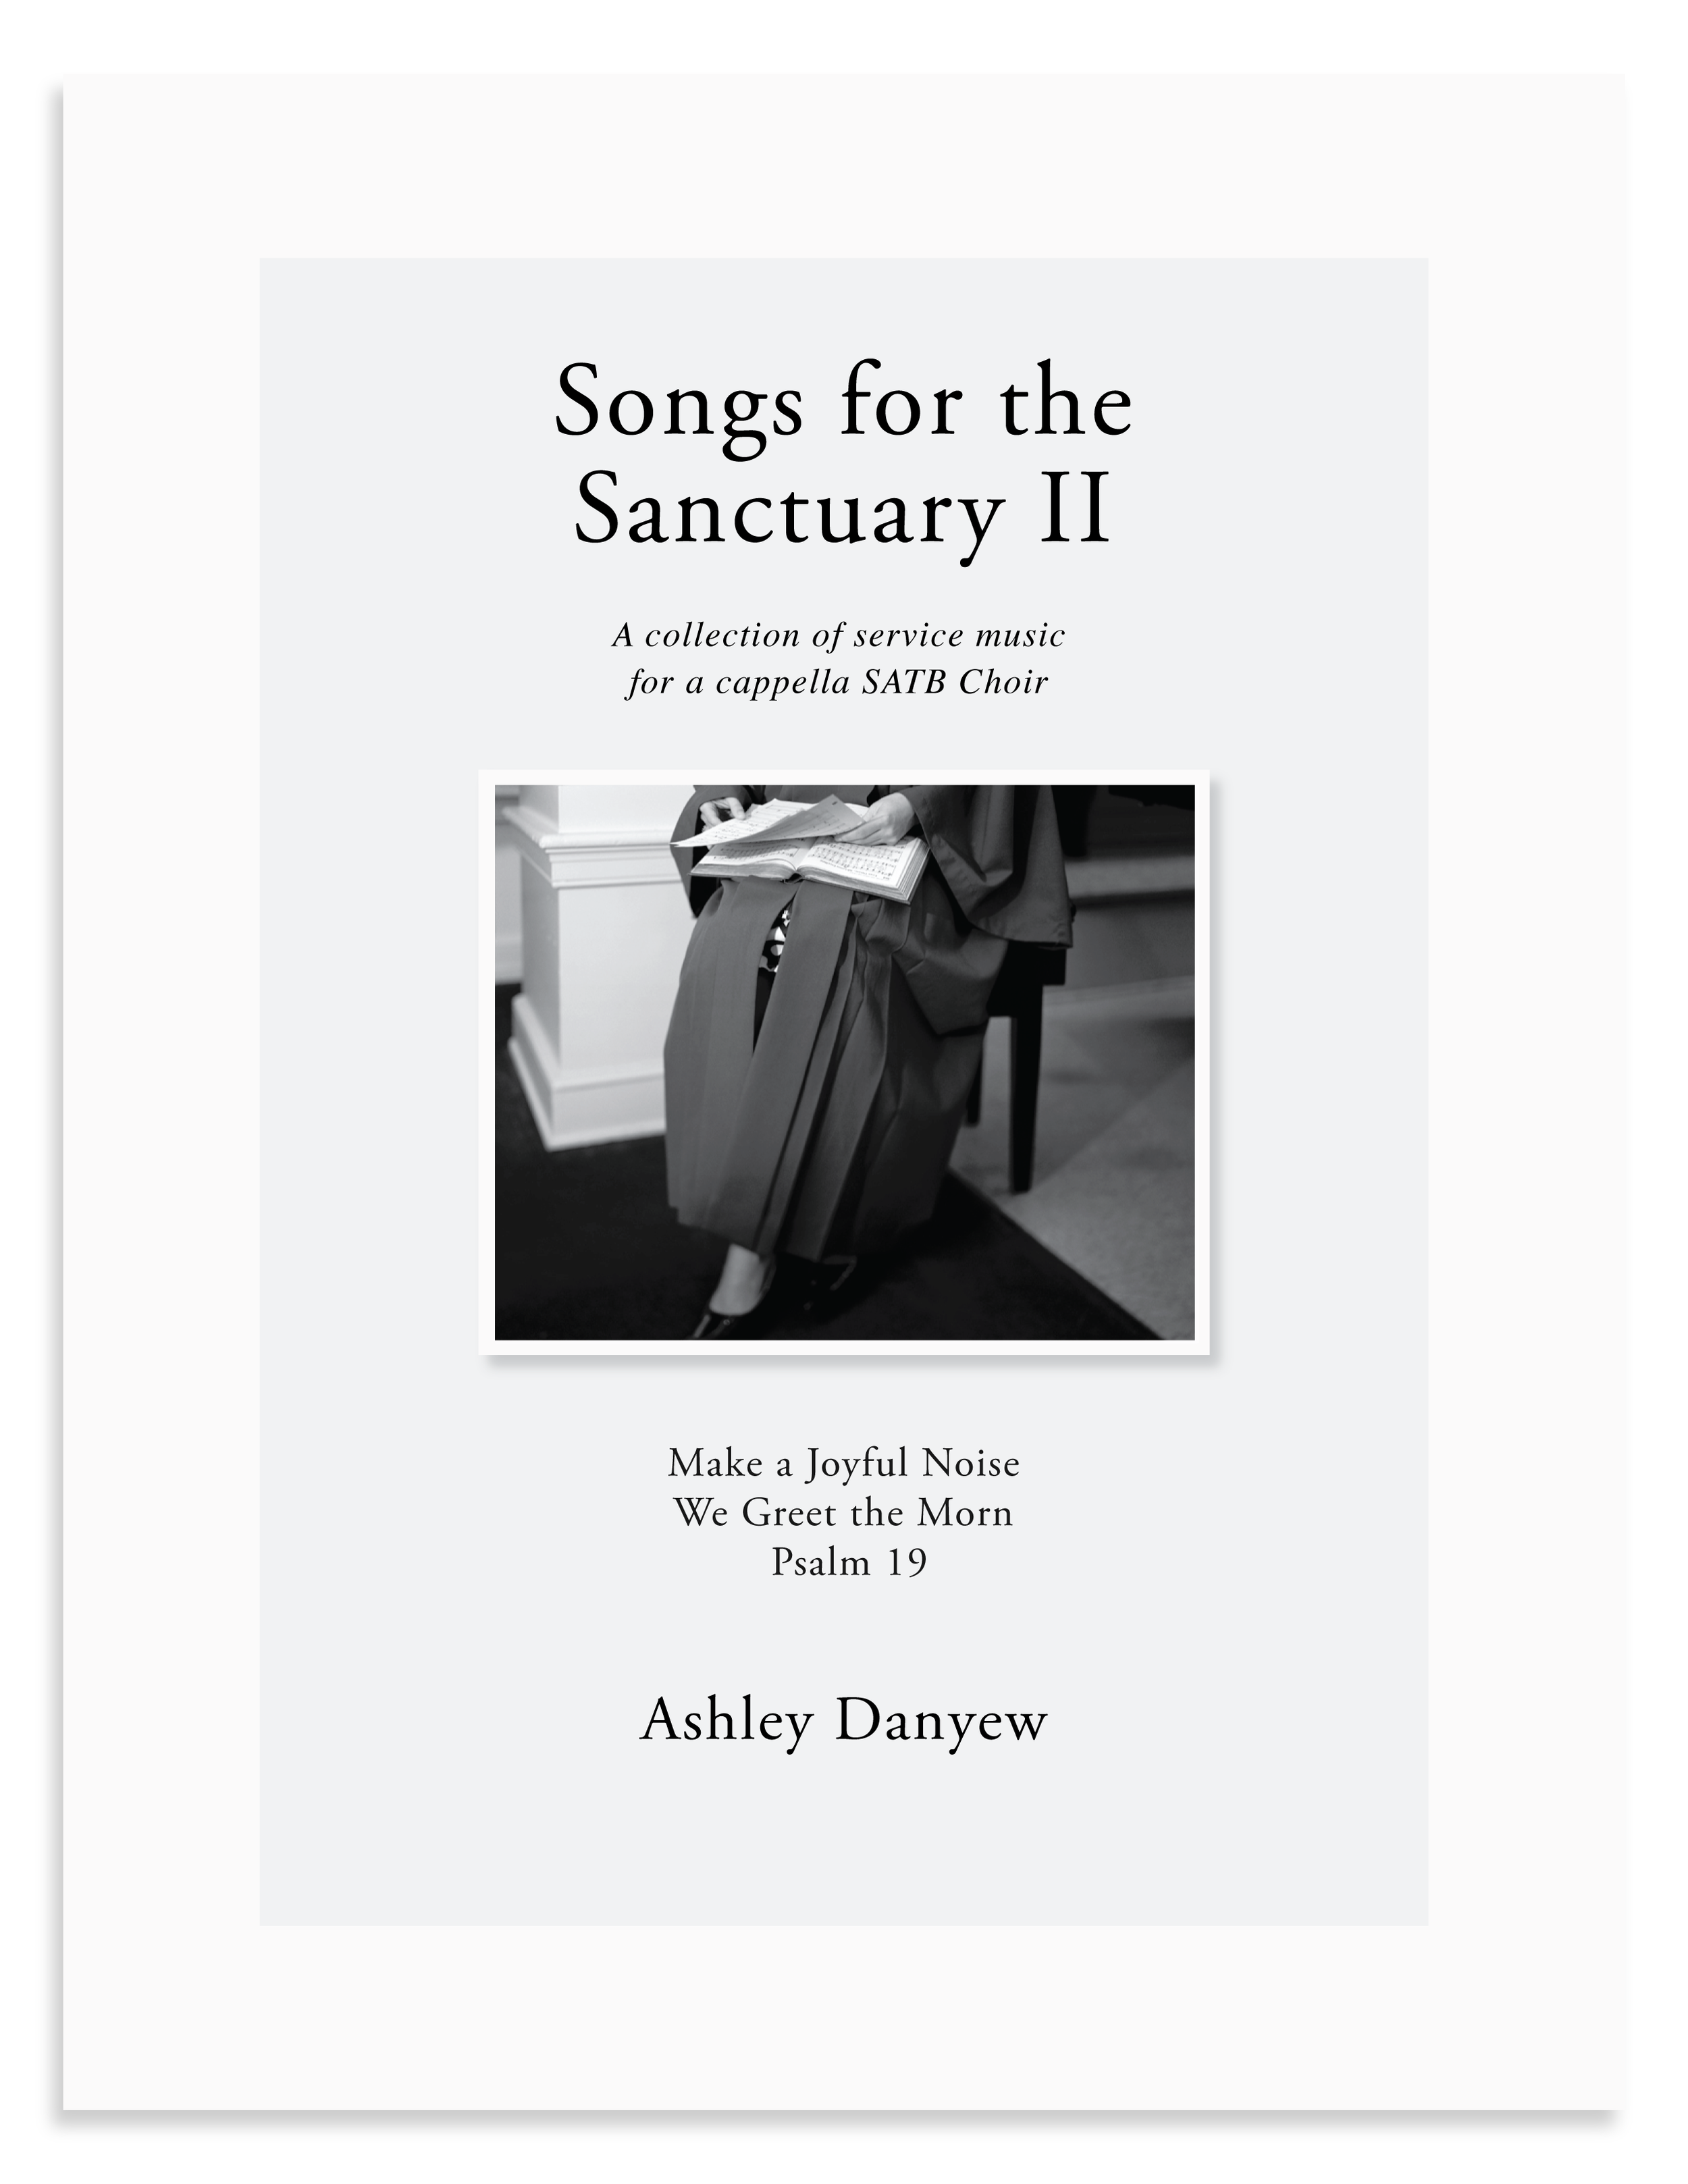 Songs for the Sanctuary II_Choral Service Music by Ashley Danyew.png